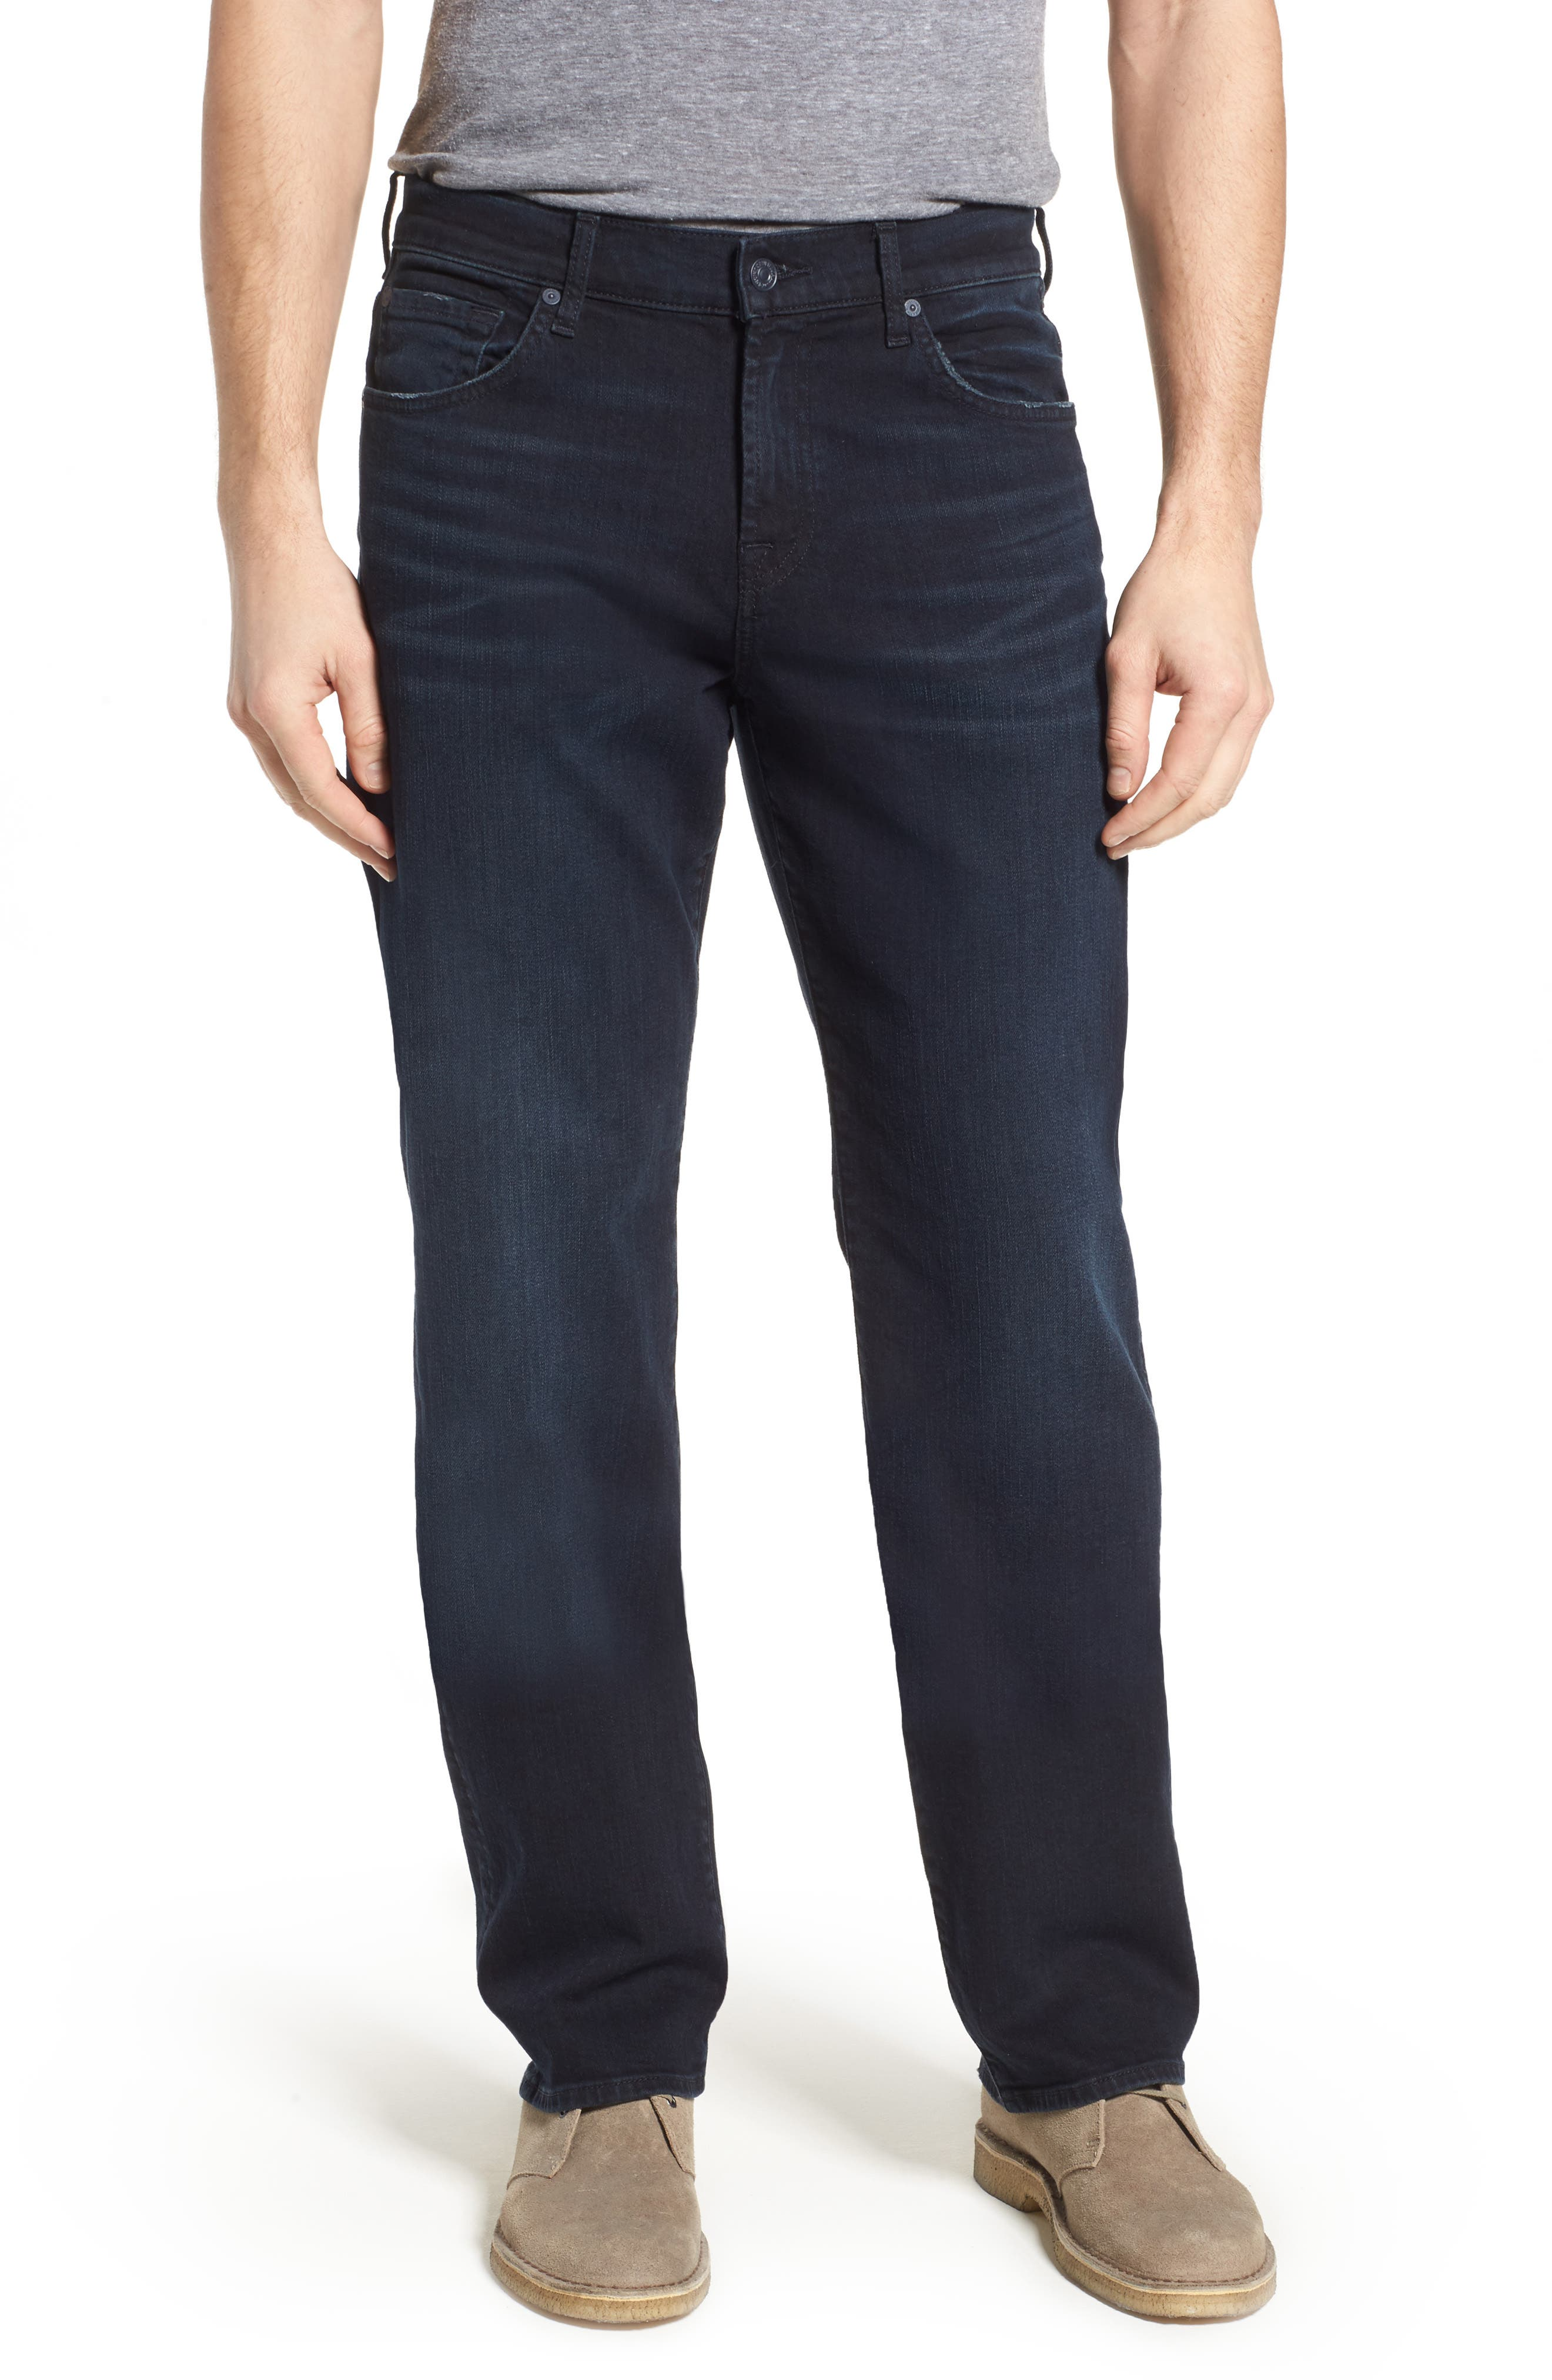 Main Image - 7 For All Mankind® 'Austyn- LuxePerformance' Relaxed Fit Jeans (Havoc)